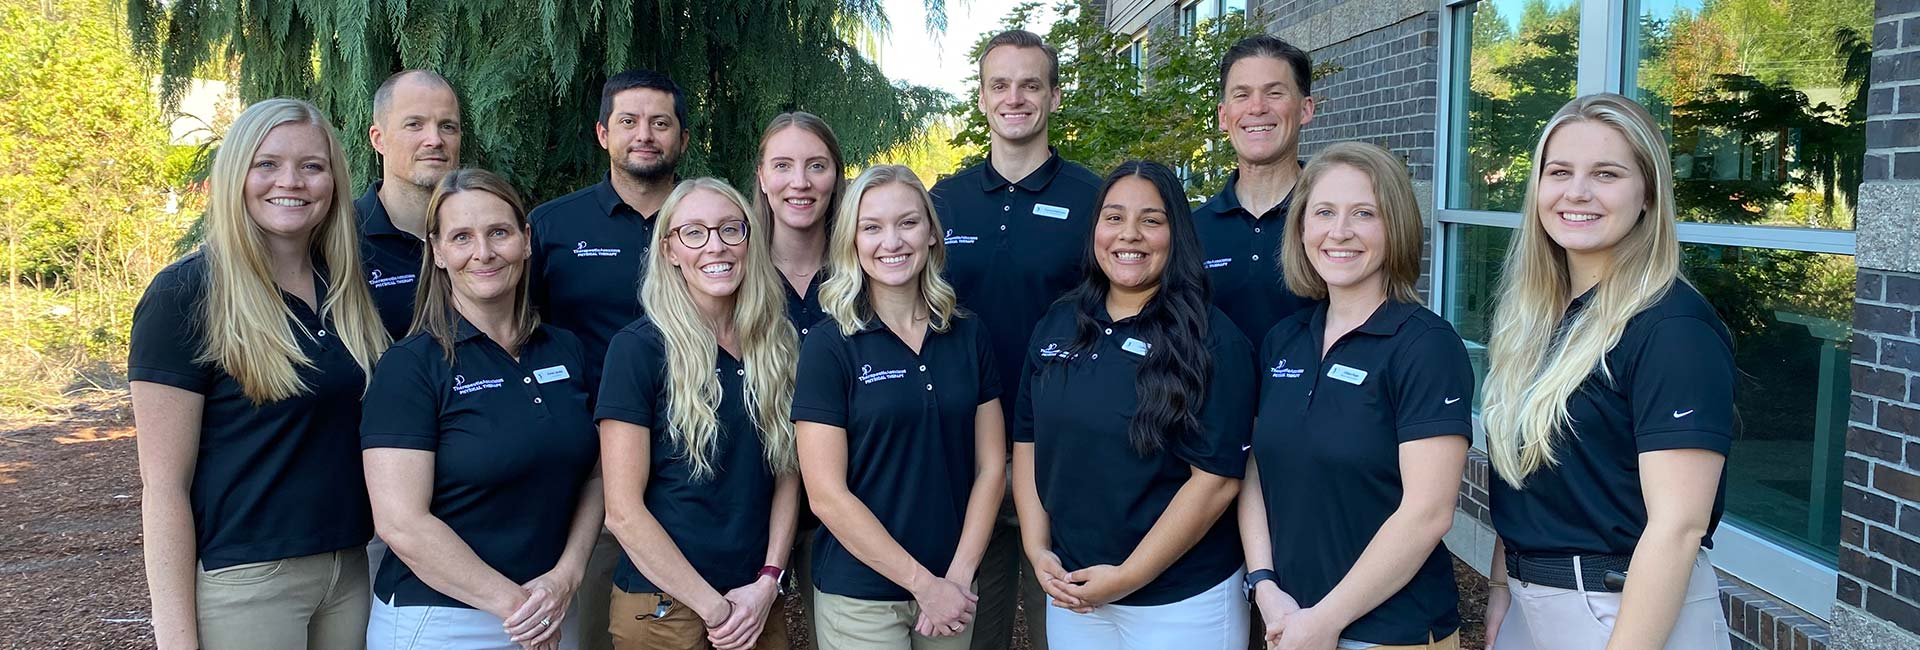 Therapeutic Associates Physical Therapy - South Salem Team